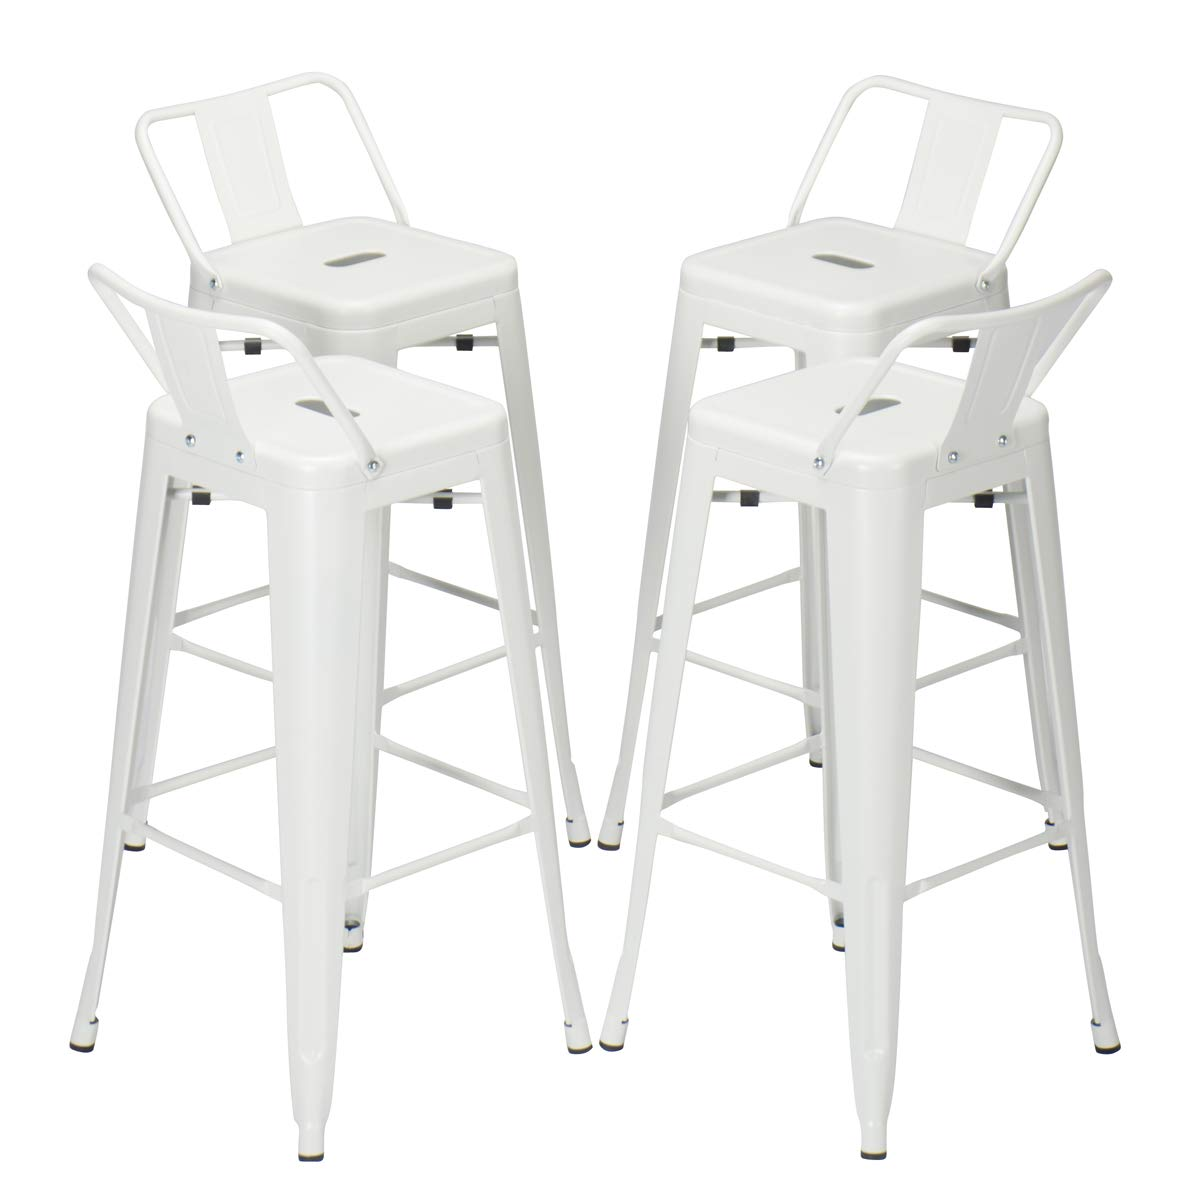 30 inch Metal Barstools Set of 4 Indoor Outdoor with Low Back Counter Height Stool Cafe Side Bar Stools White